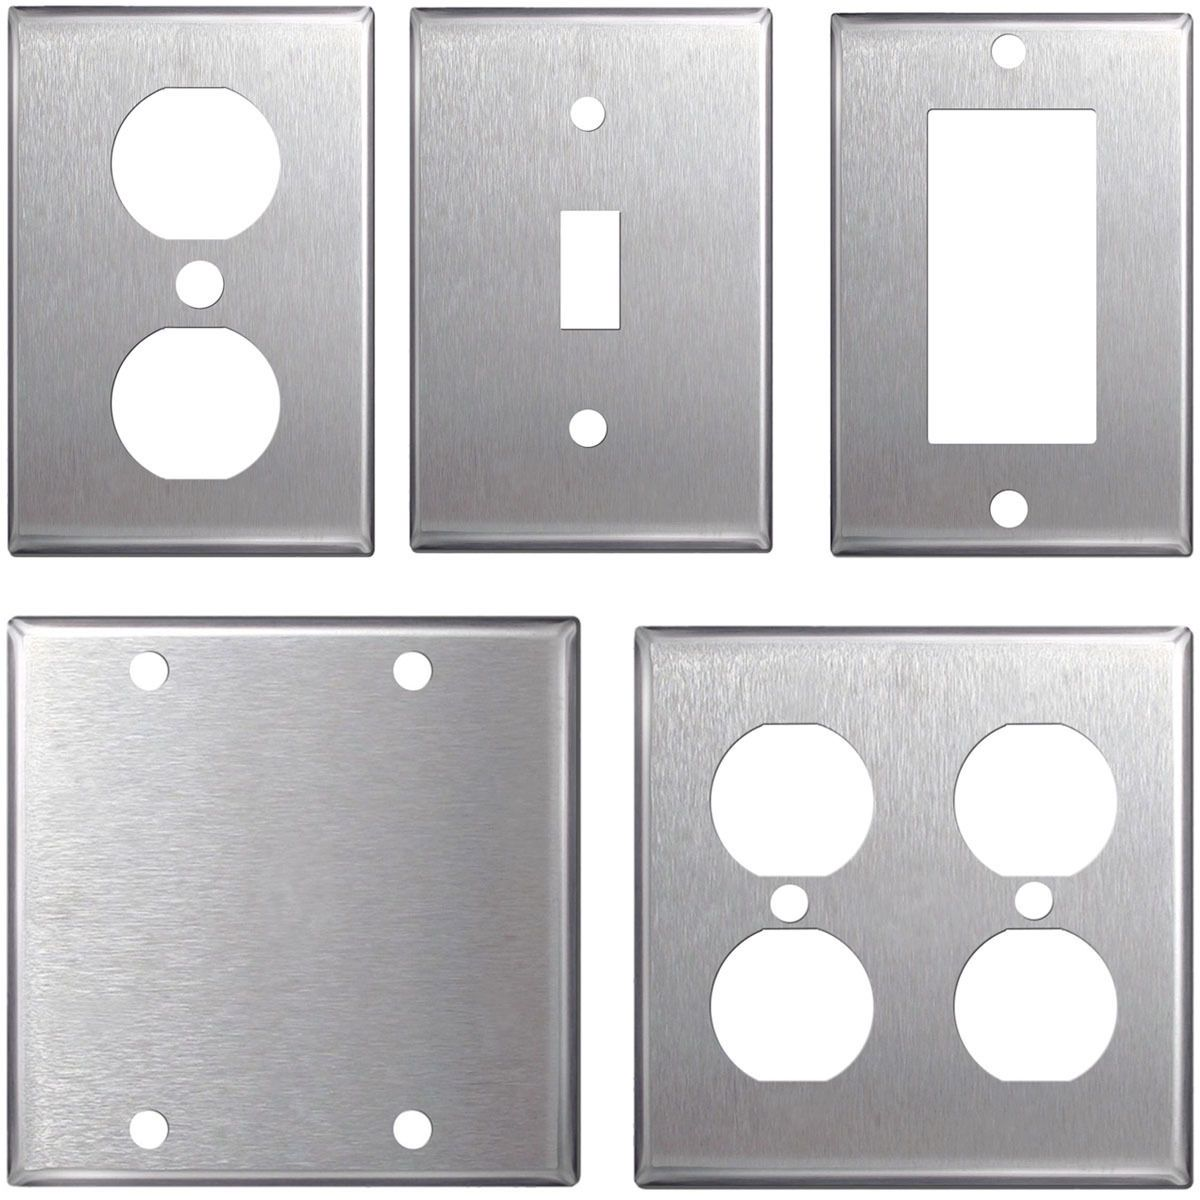 Stainless Steel Light Switch Plates Switch Plates And Outlet Covers 43412 Stainless Steel Wall Plates